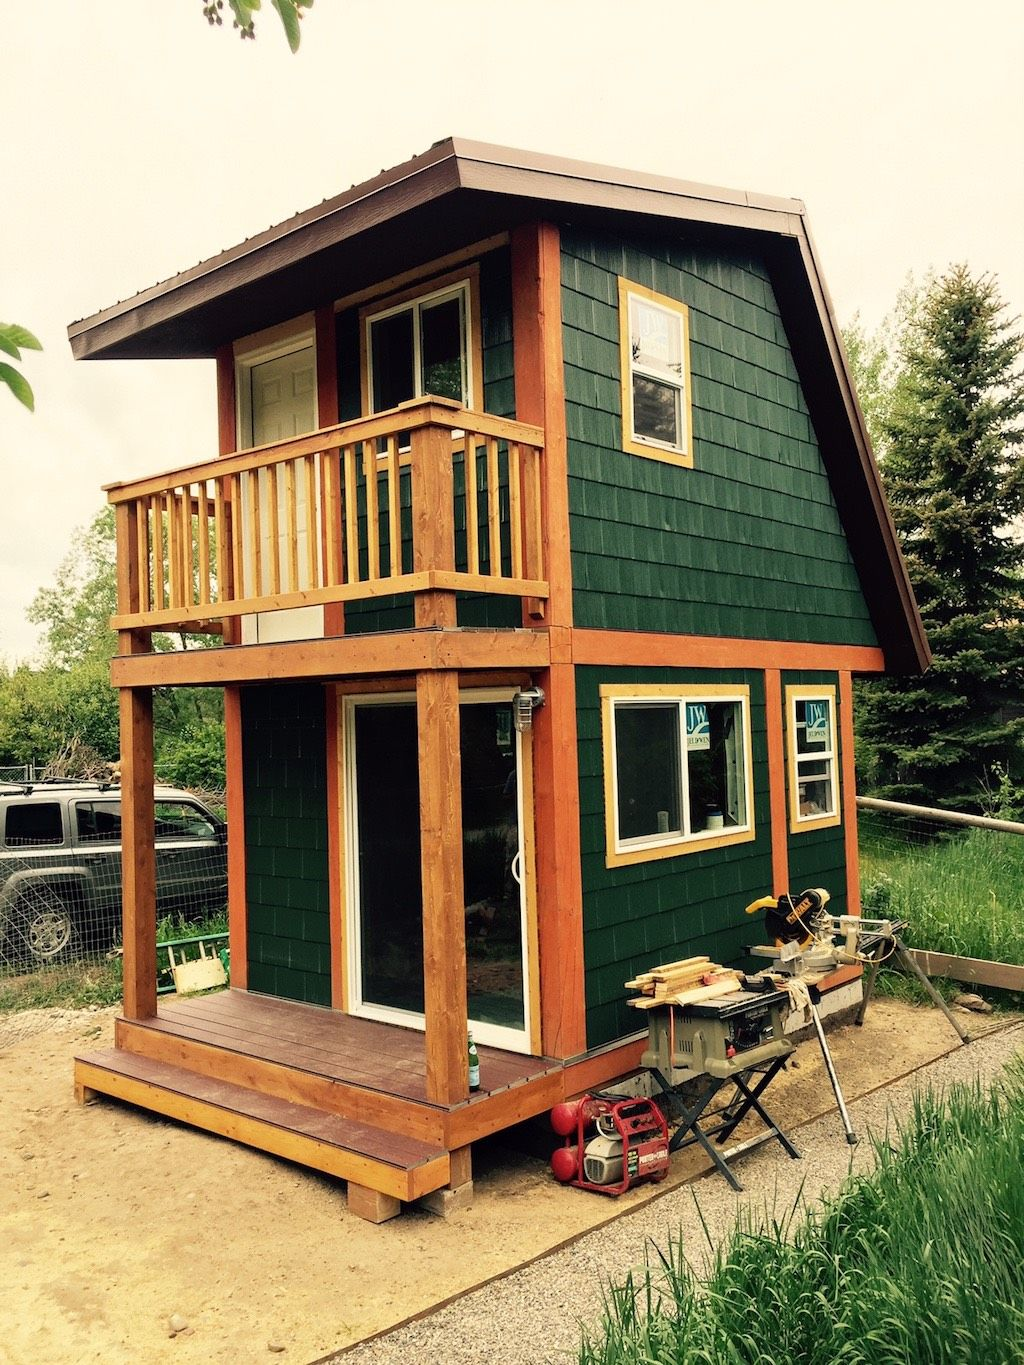 Tiny Home Designs: Tiny House With Two Stories ! Amazing Structure In Such A